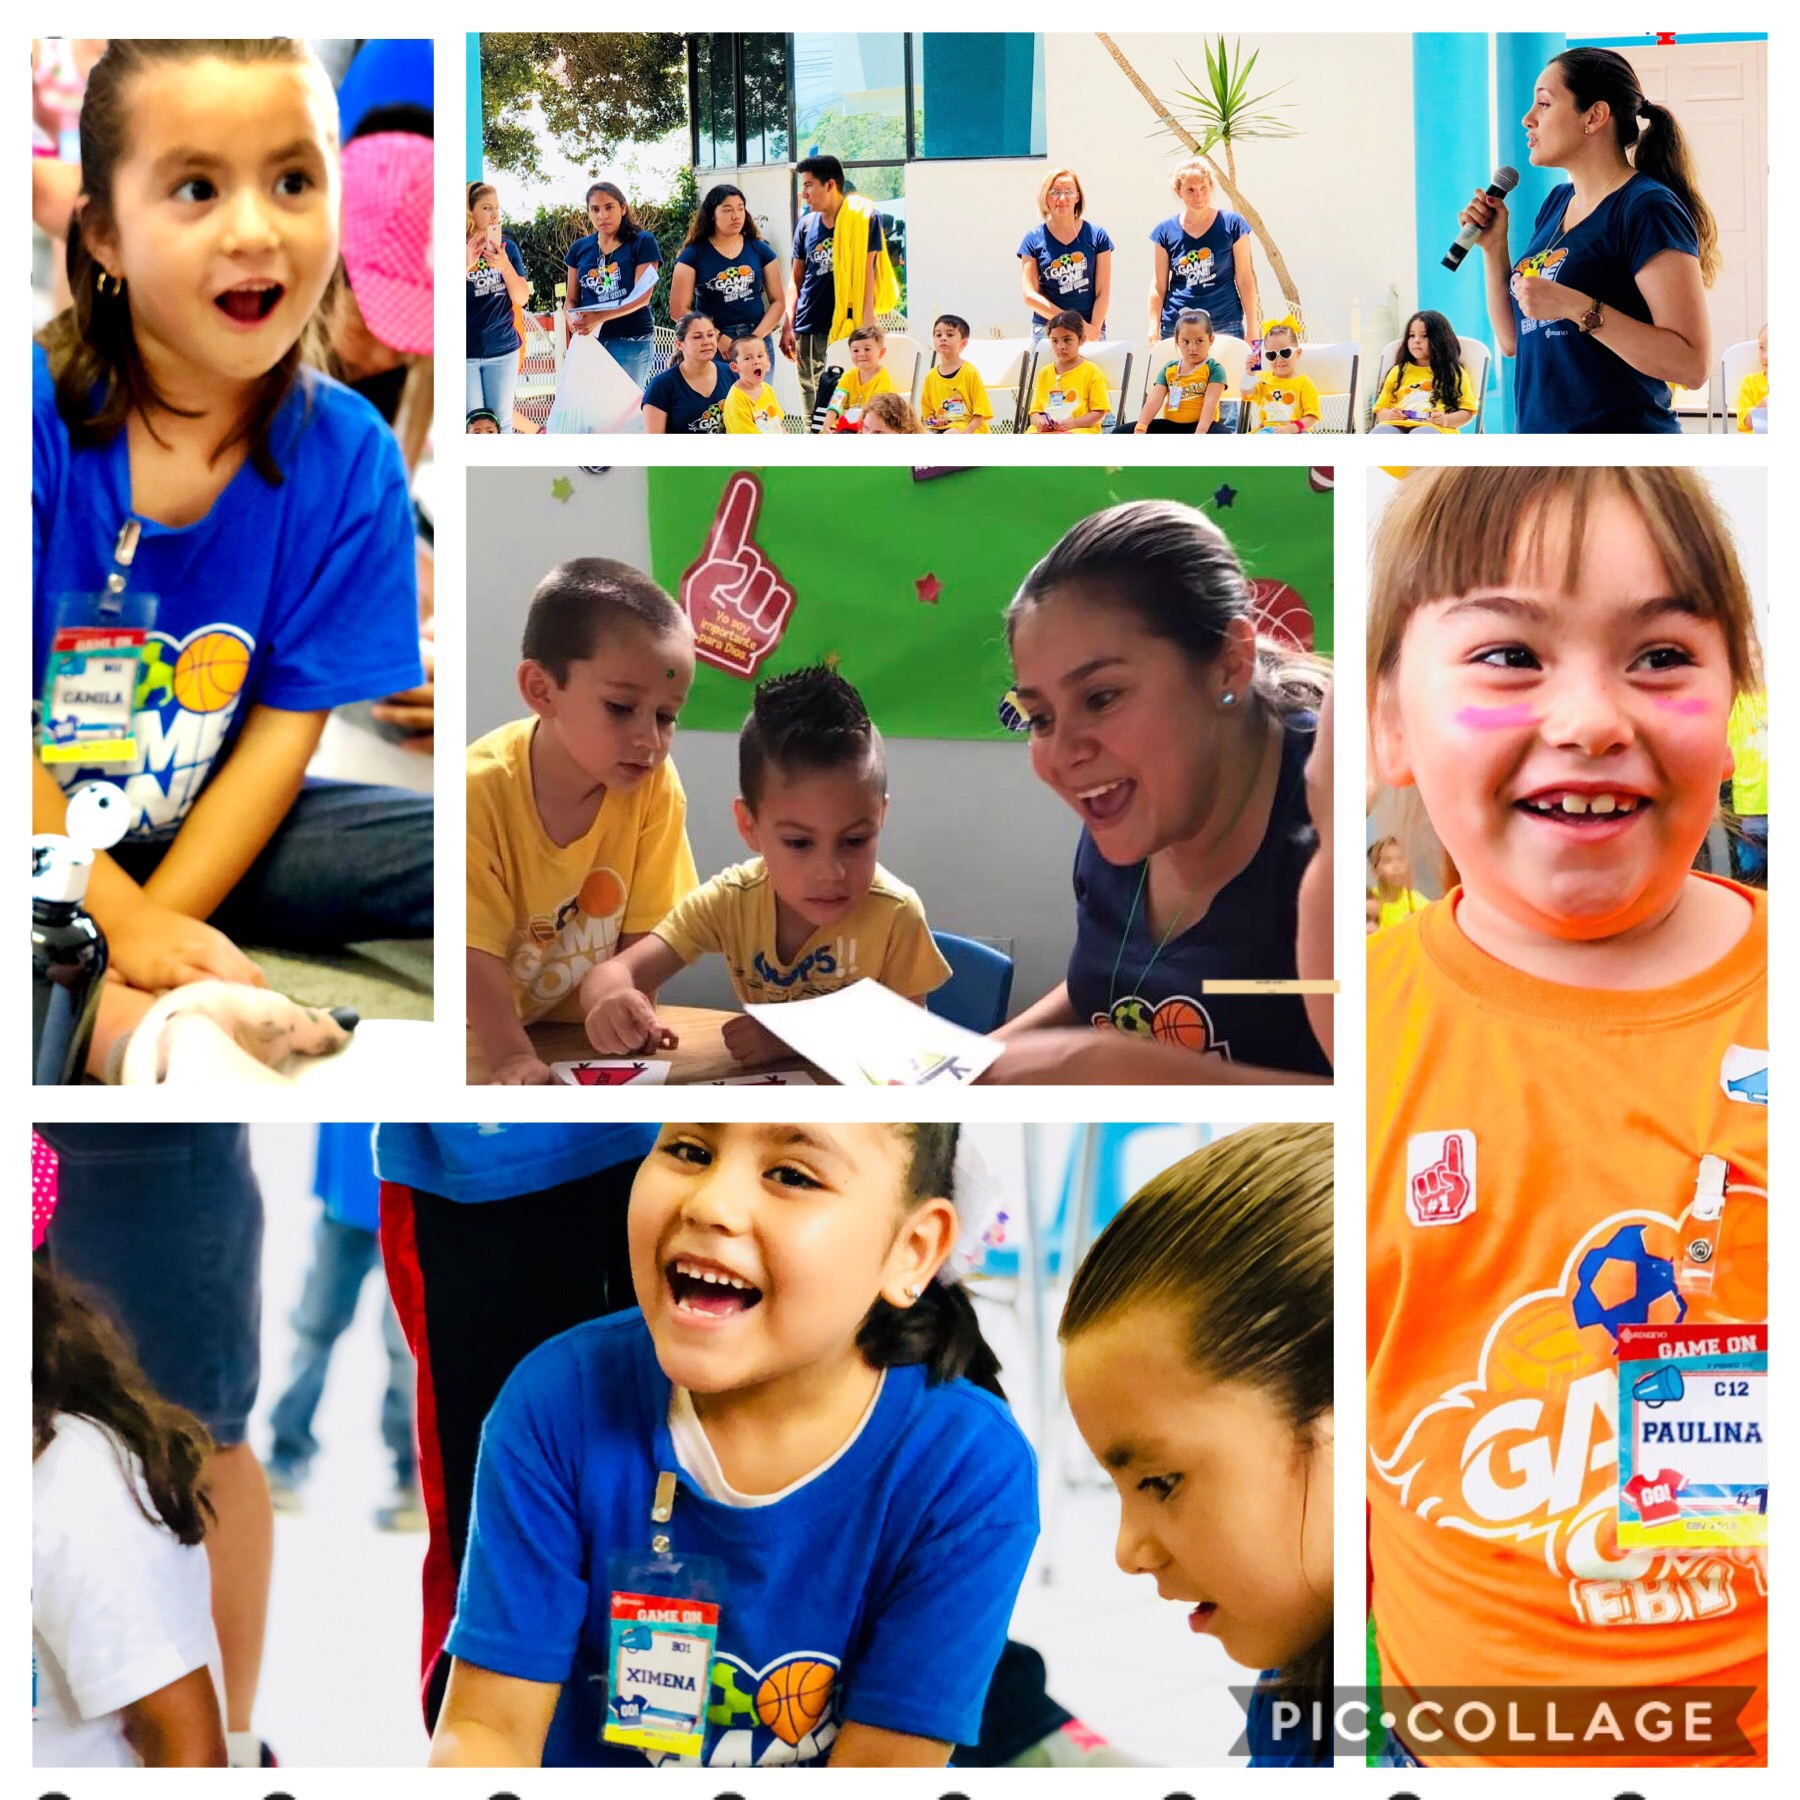 Many smiles - a fun filled week on VBS in Ensenada